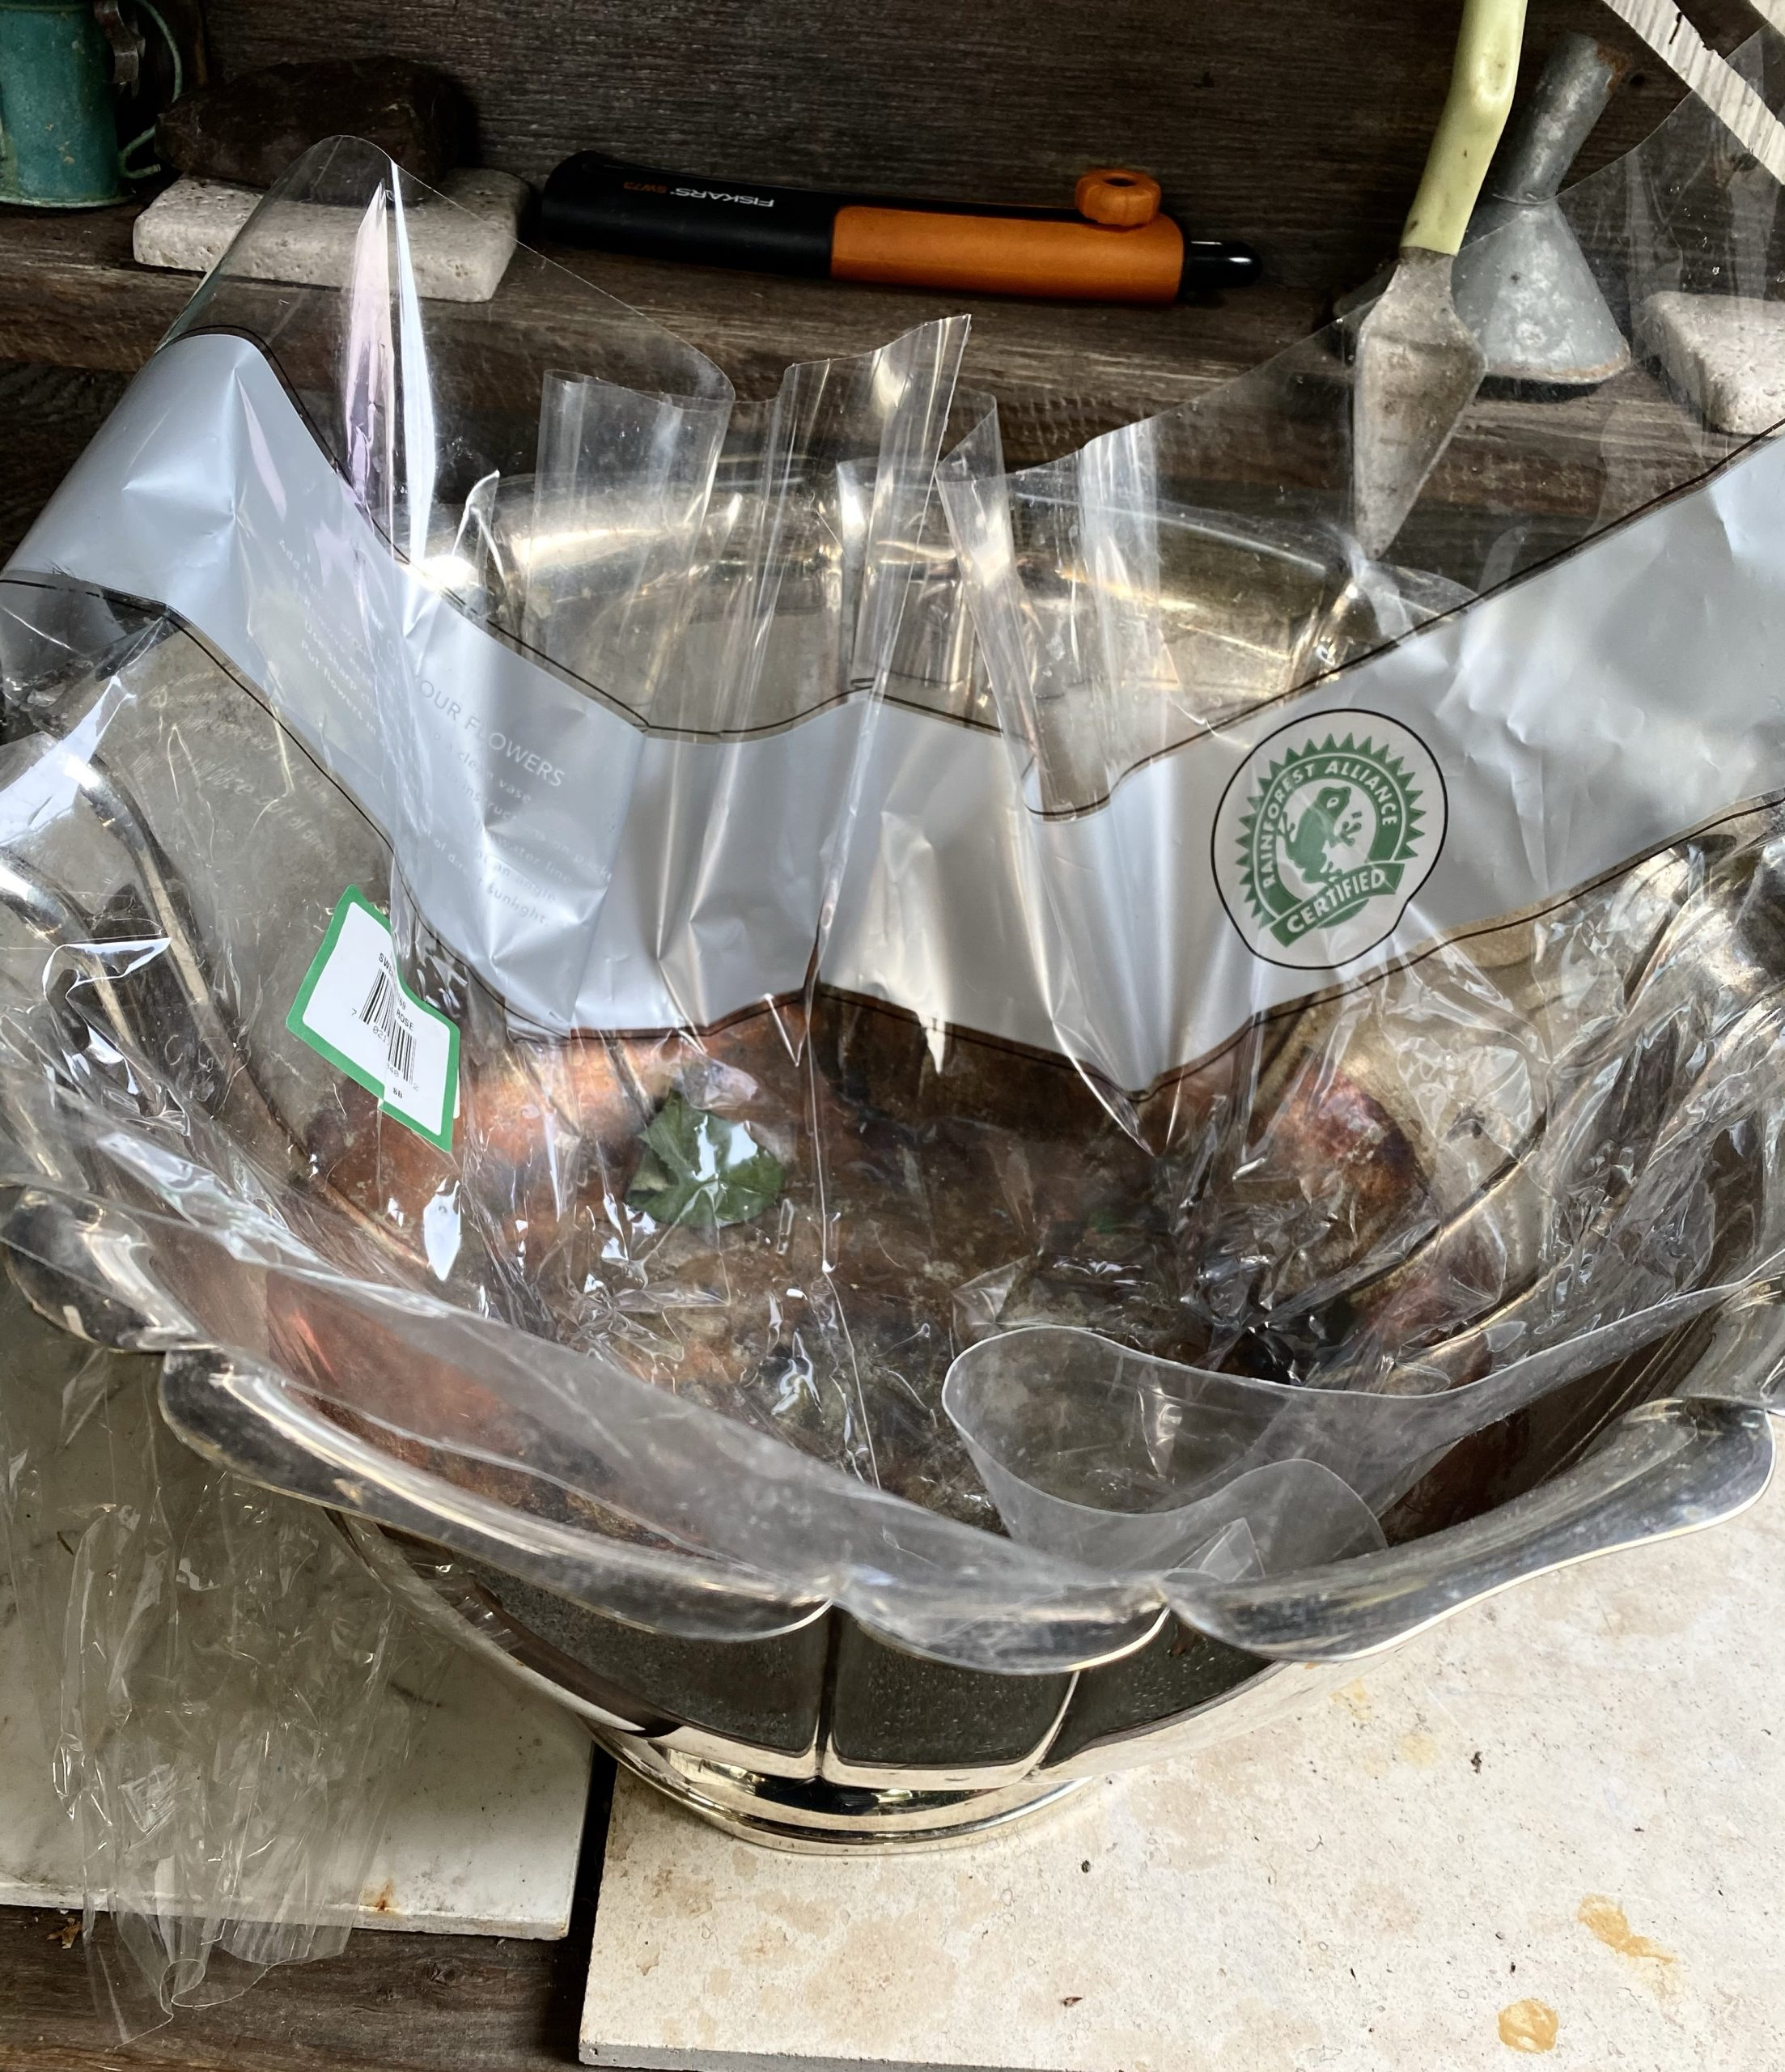 rustic potting table, potting table, silver punch bowl lined with cellophane